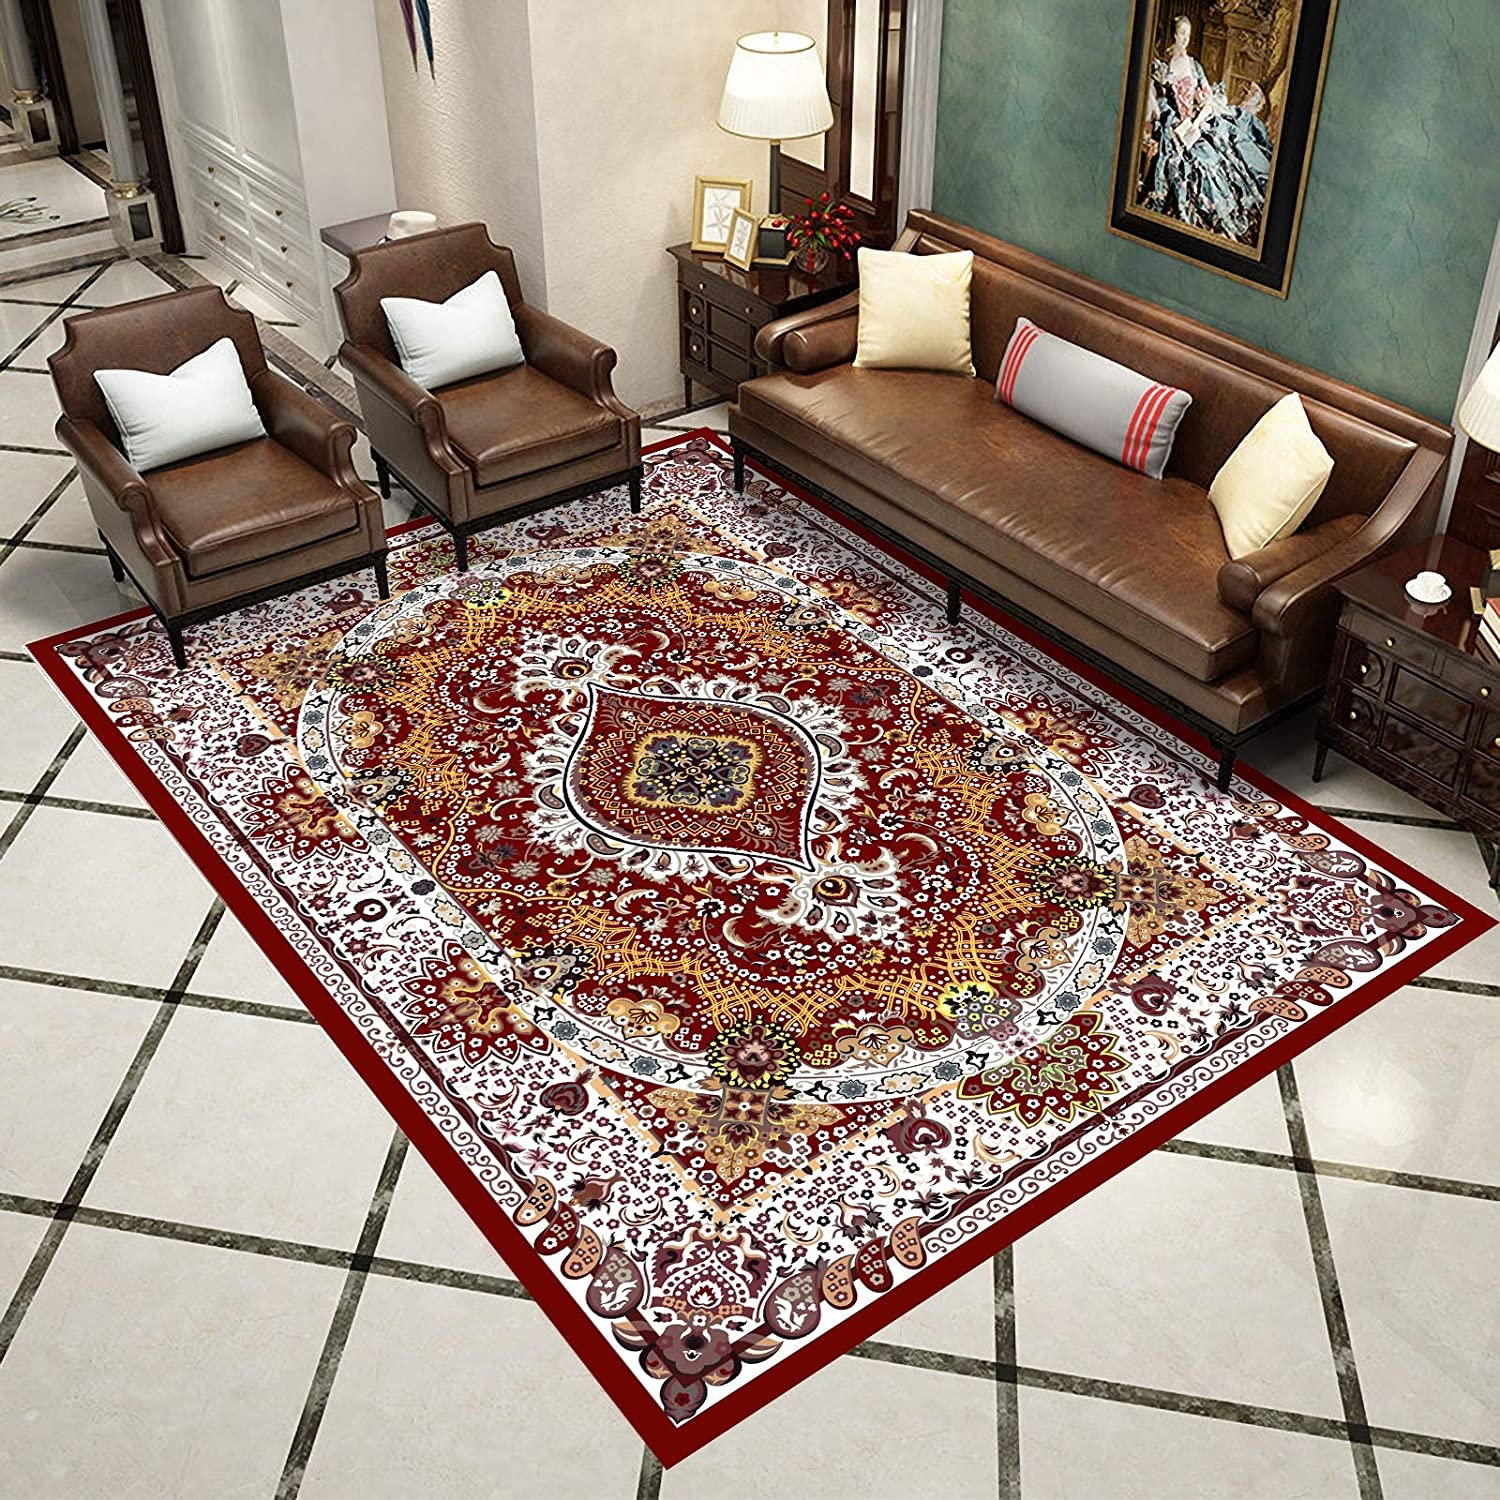 Rugs Living Room Large unisex Floral Runner Sales for sale Low Traditional Long P